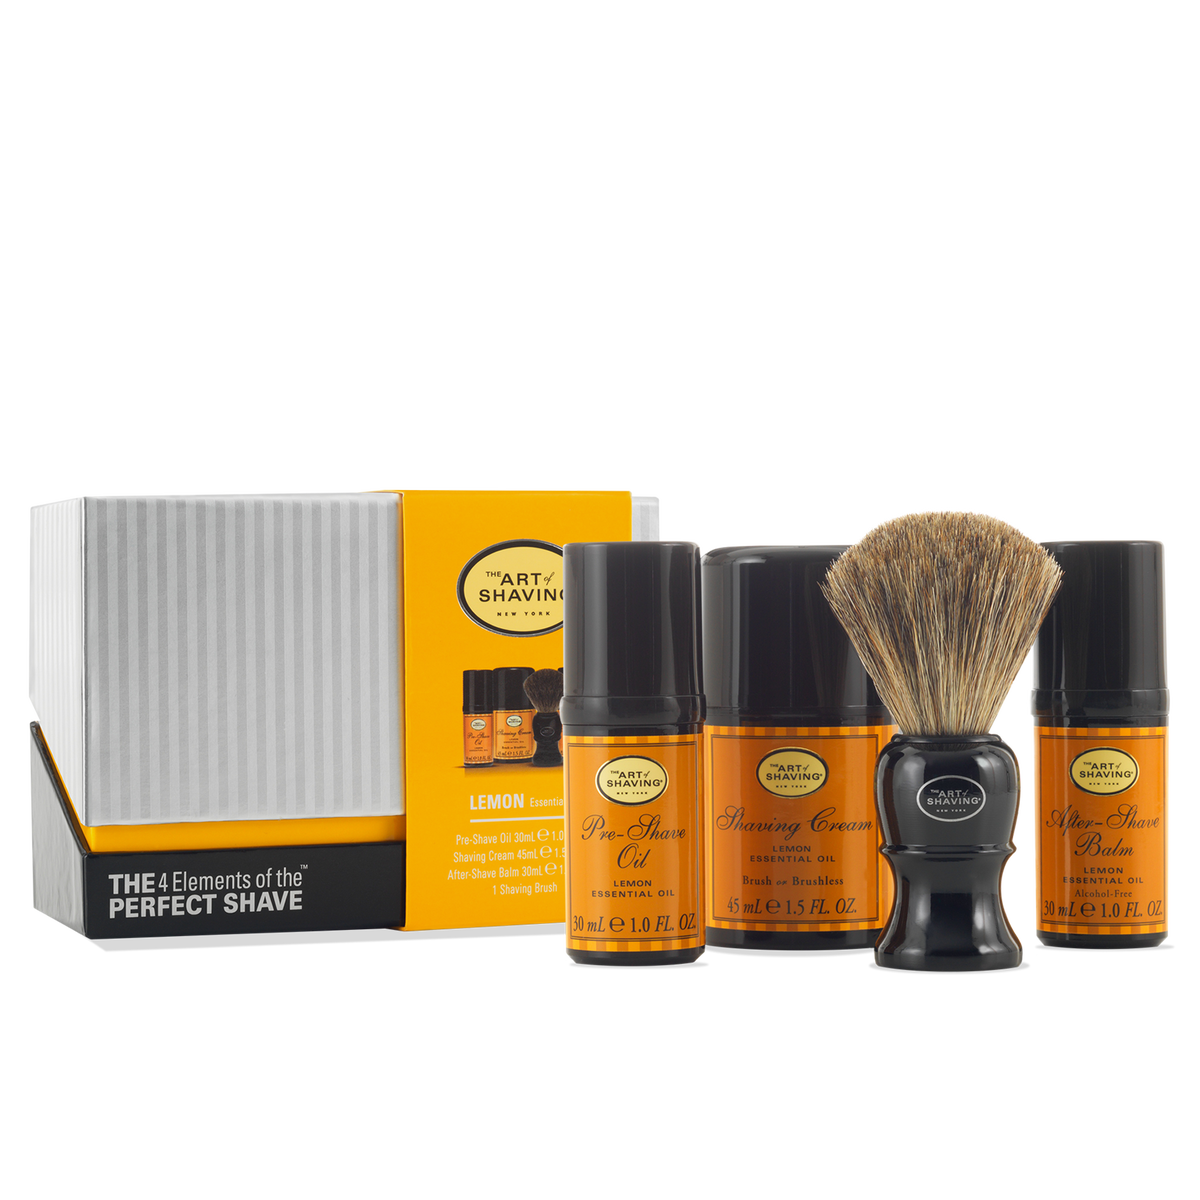 THE ART OF SHAVING LEMON MID SIZE THE 4 ELEMENTS OF THE PERFECT SHAVE